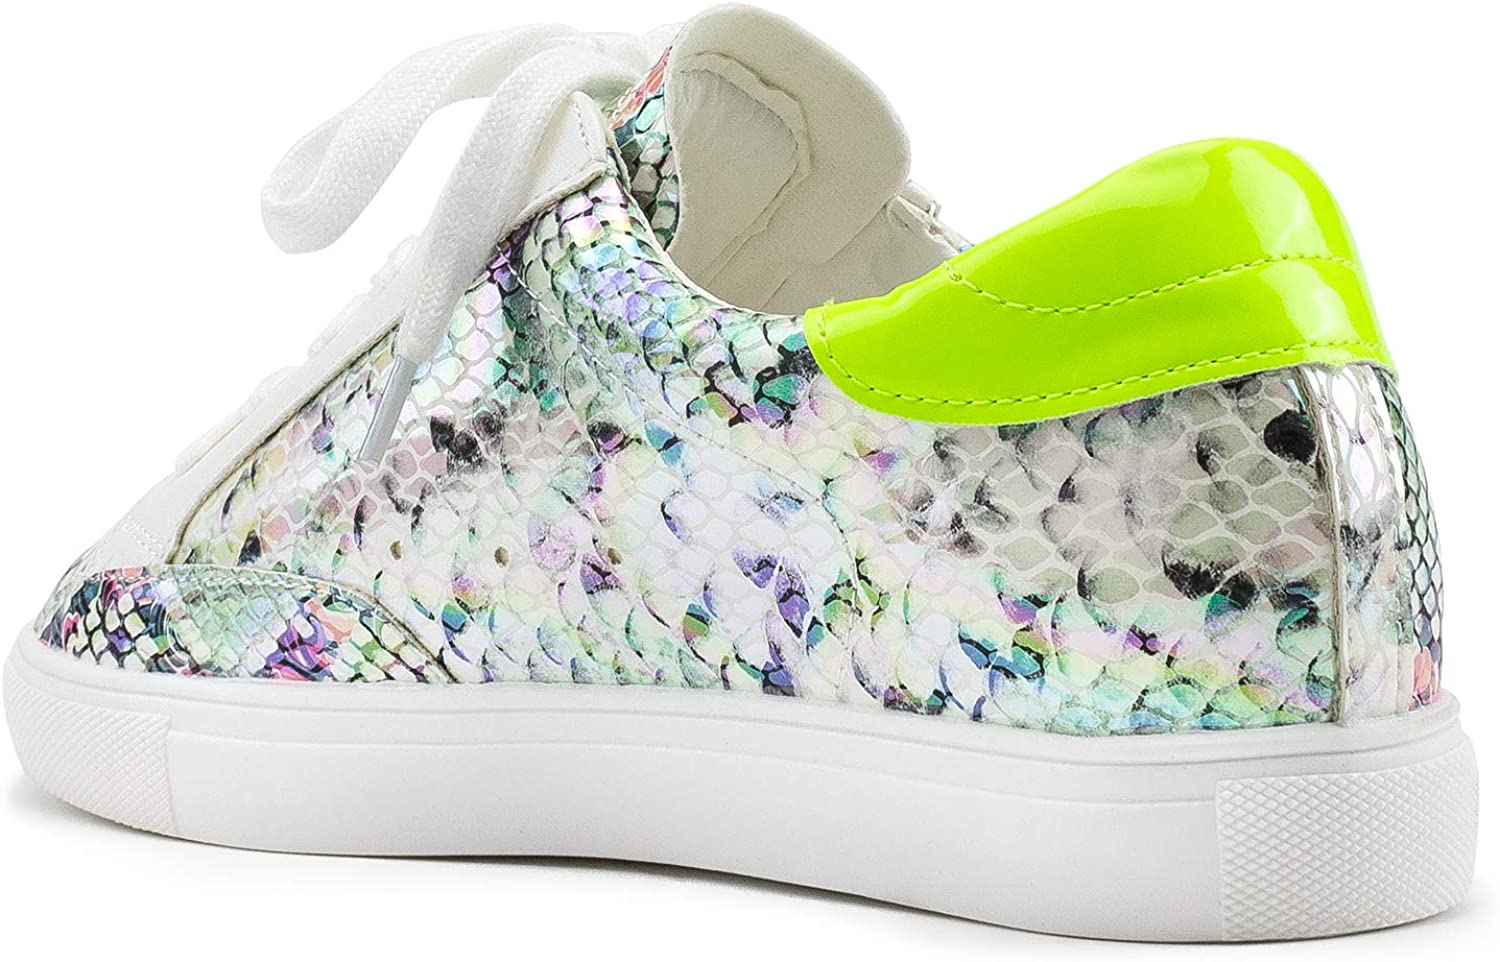 RF ROOM OF FASHION Women's Casual Low Top Trendy Cushioned Fashion Star Sneakers Neon Green Pat (Run Small. Order Half Size Up)